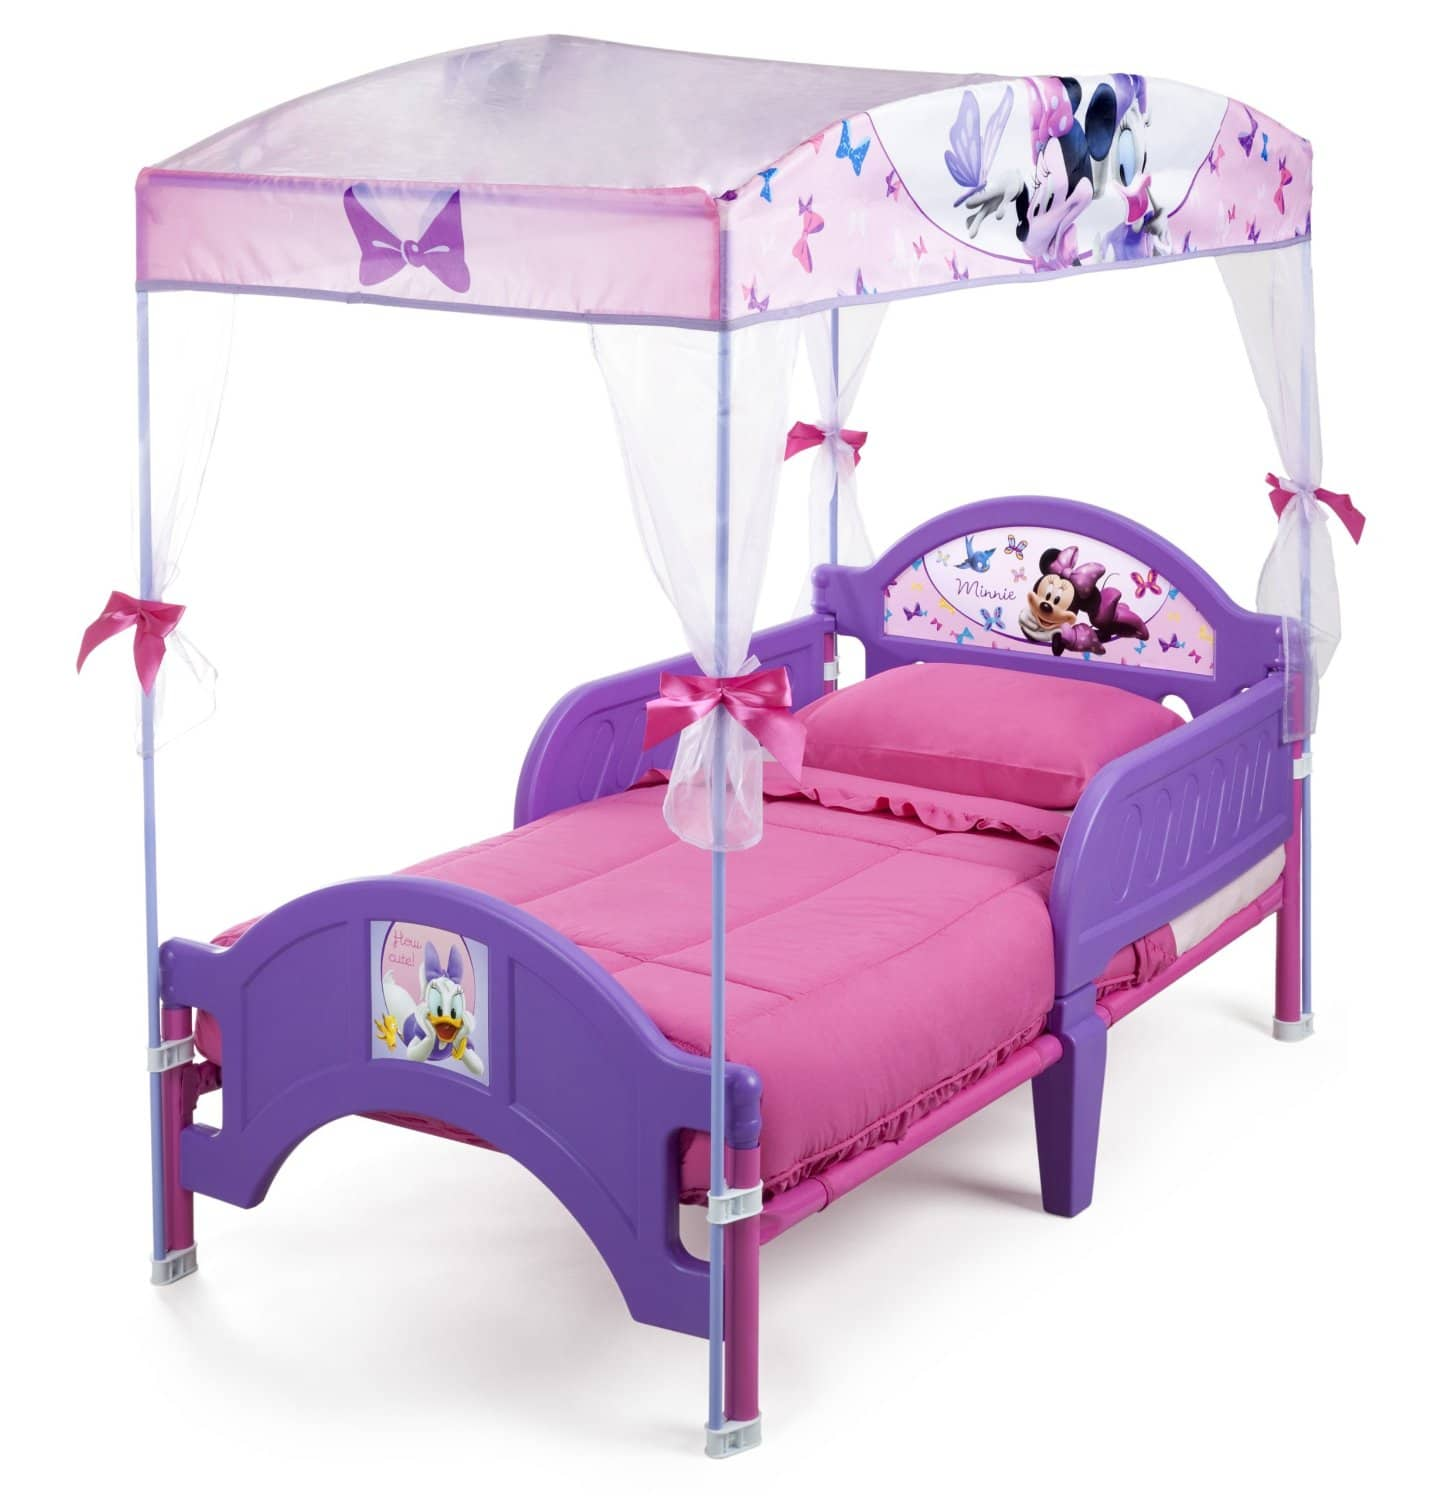 Dream On Me Toddler Bed Reviews